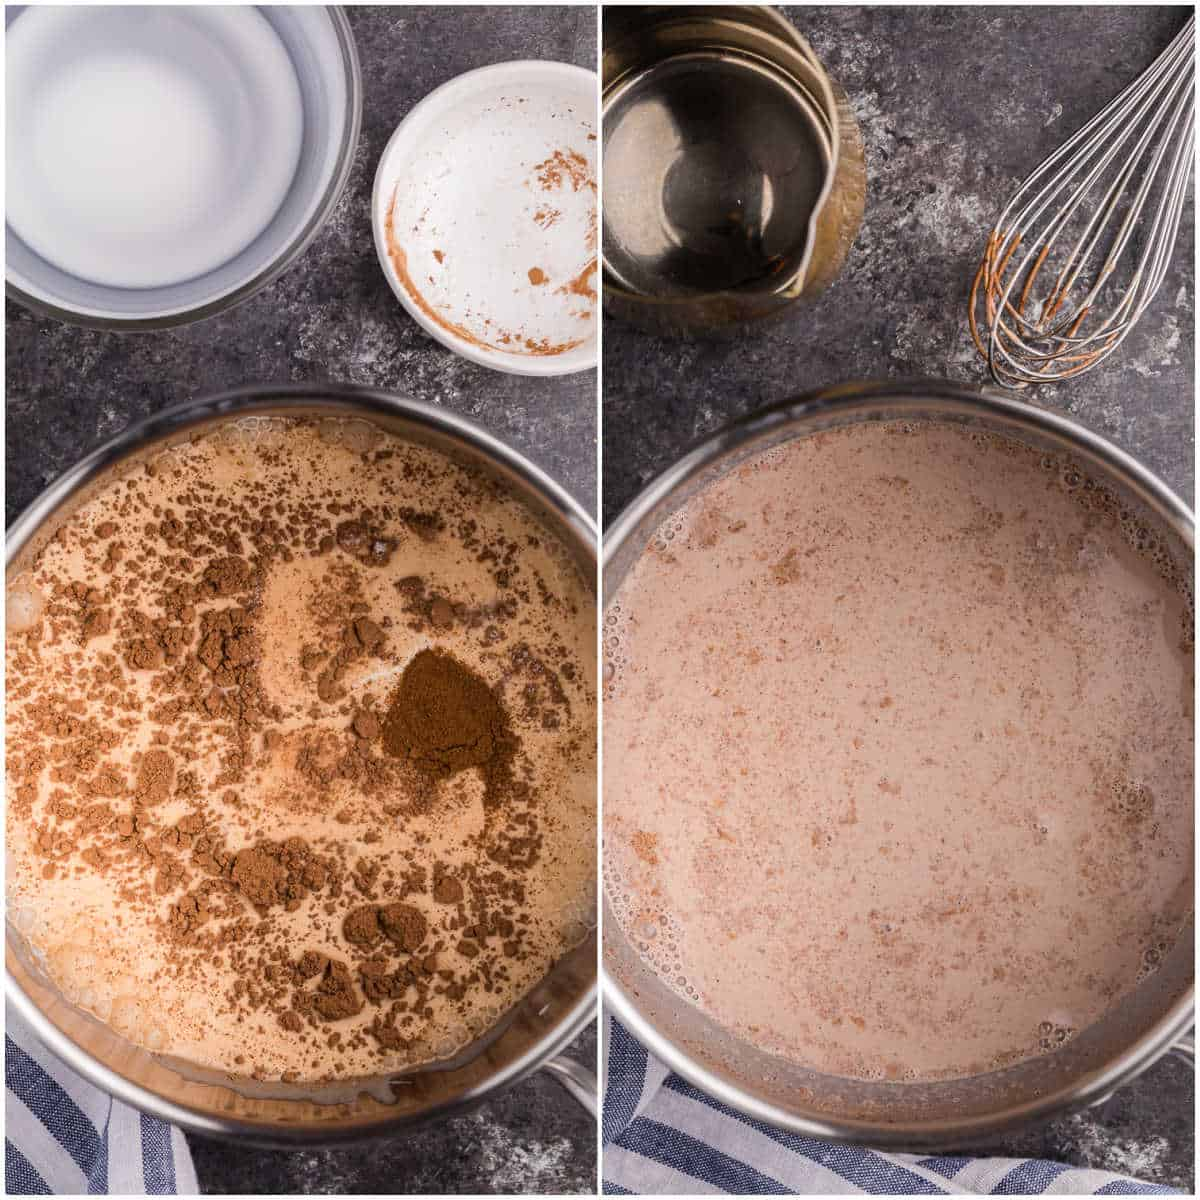 prep of mocha latte showing how to make the creamy portion